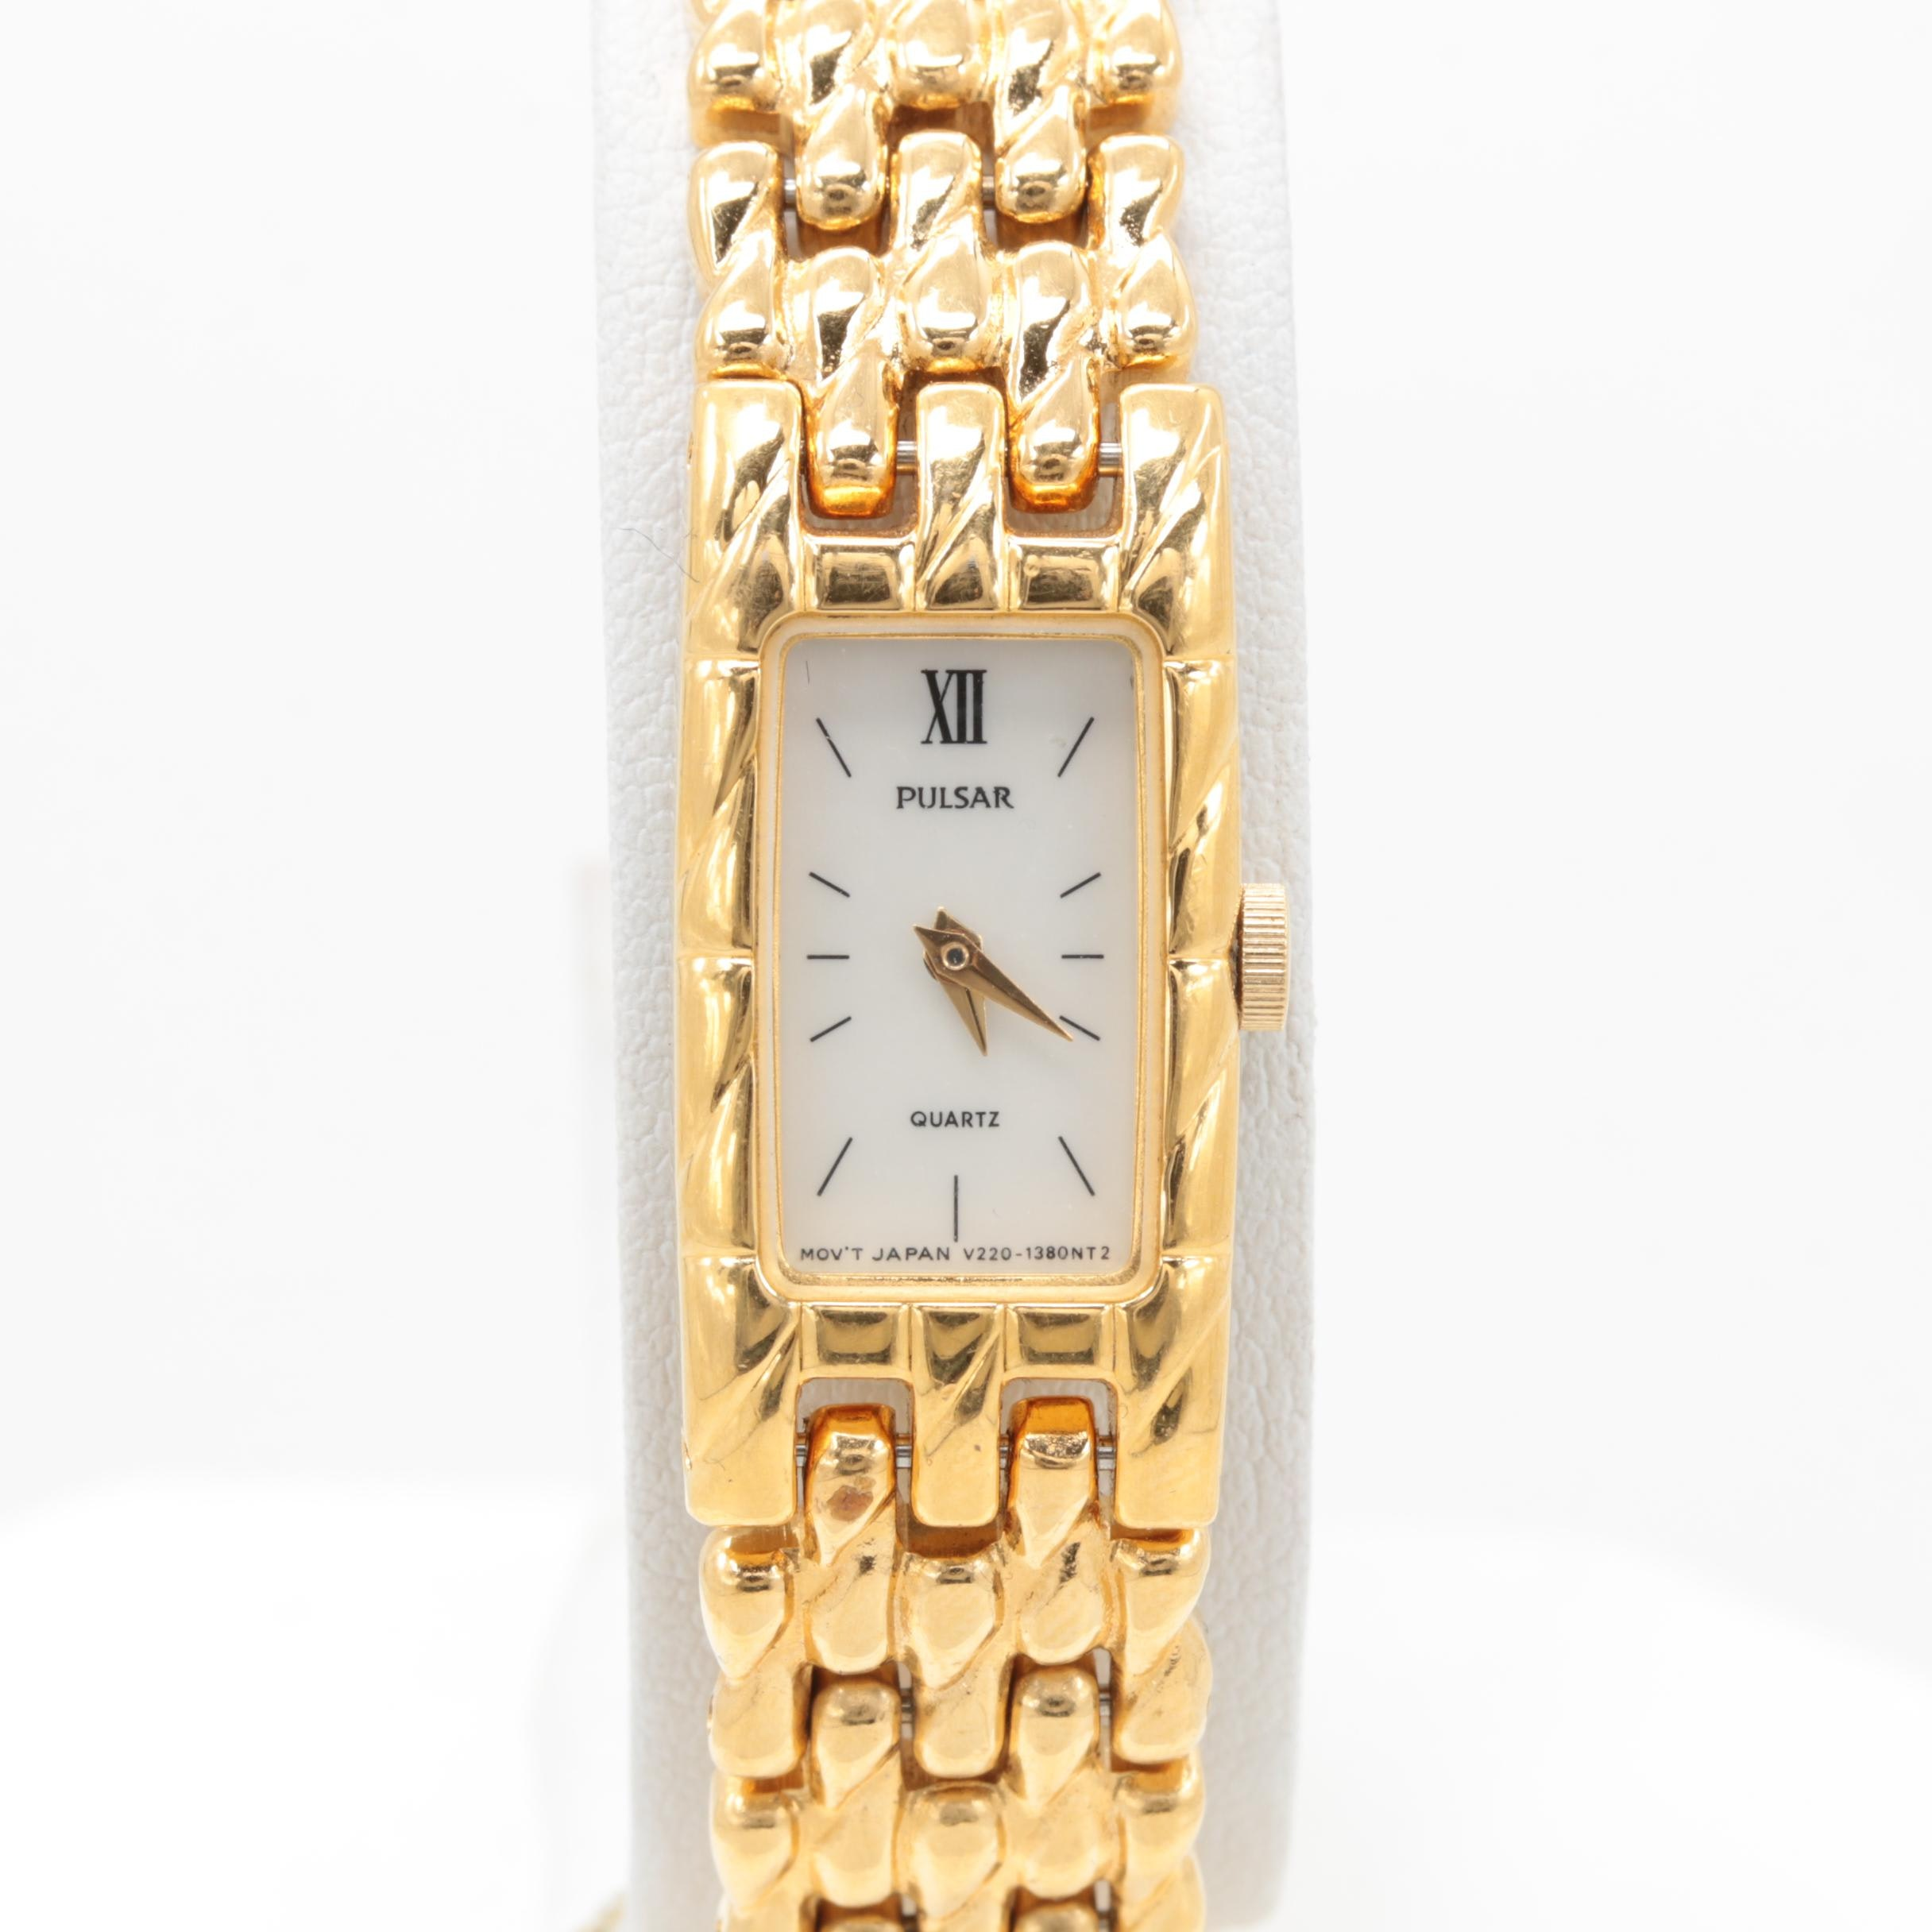 Pulsar Gold Tone Mother of Pearl Wristwatch